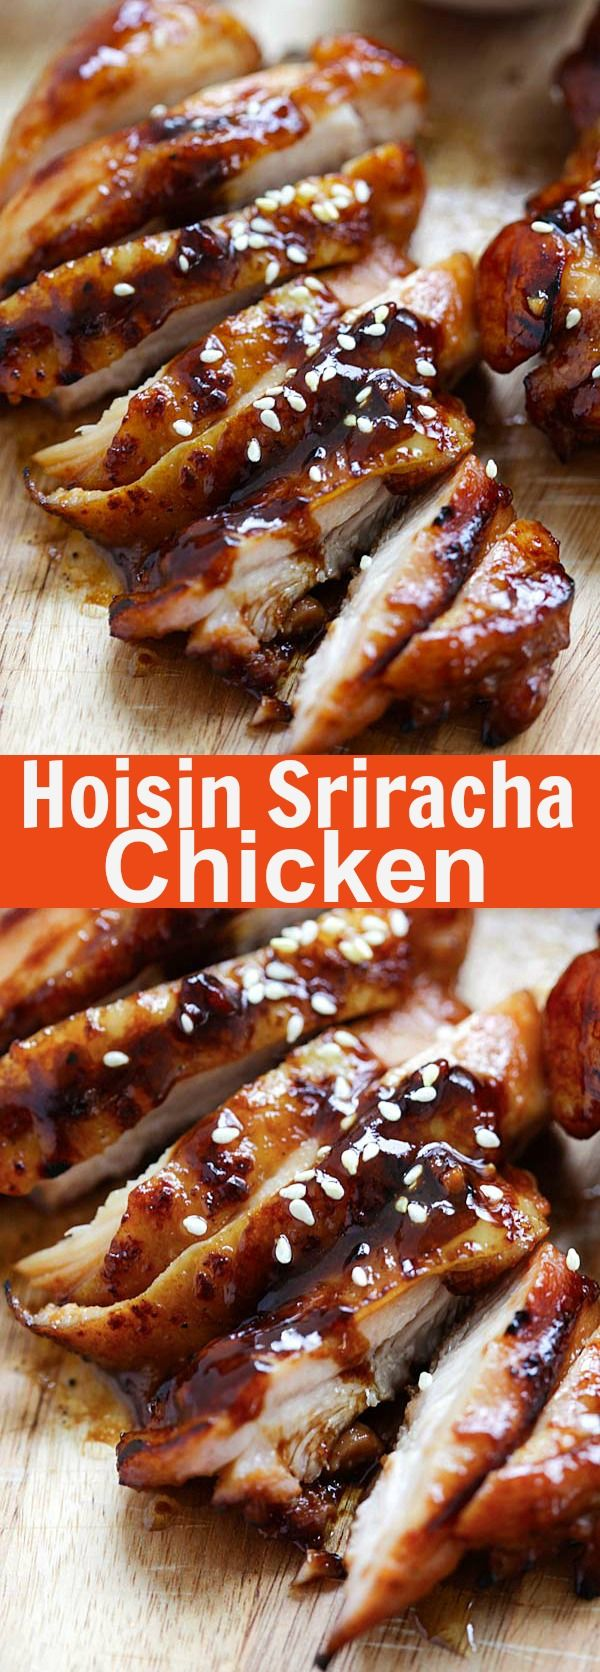 Hoisin Sriracha Chicken – Crazy delicious chicken dinner for the family! Marinated with hoisin, sriracha and honey. Takes 20 mins and so good | rasamalaysia.com